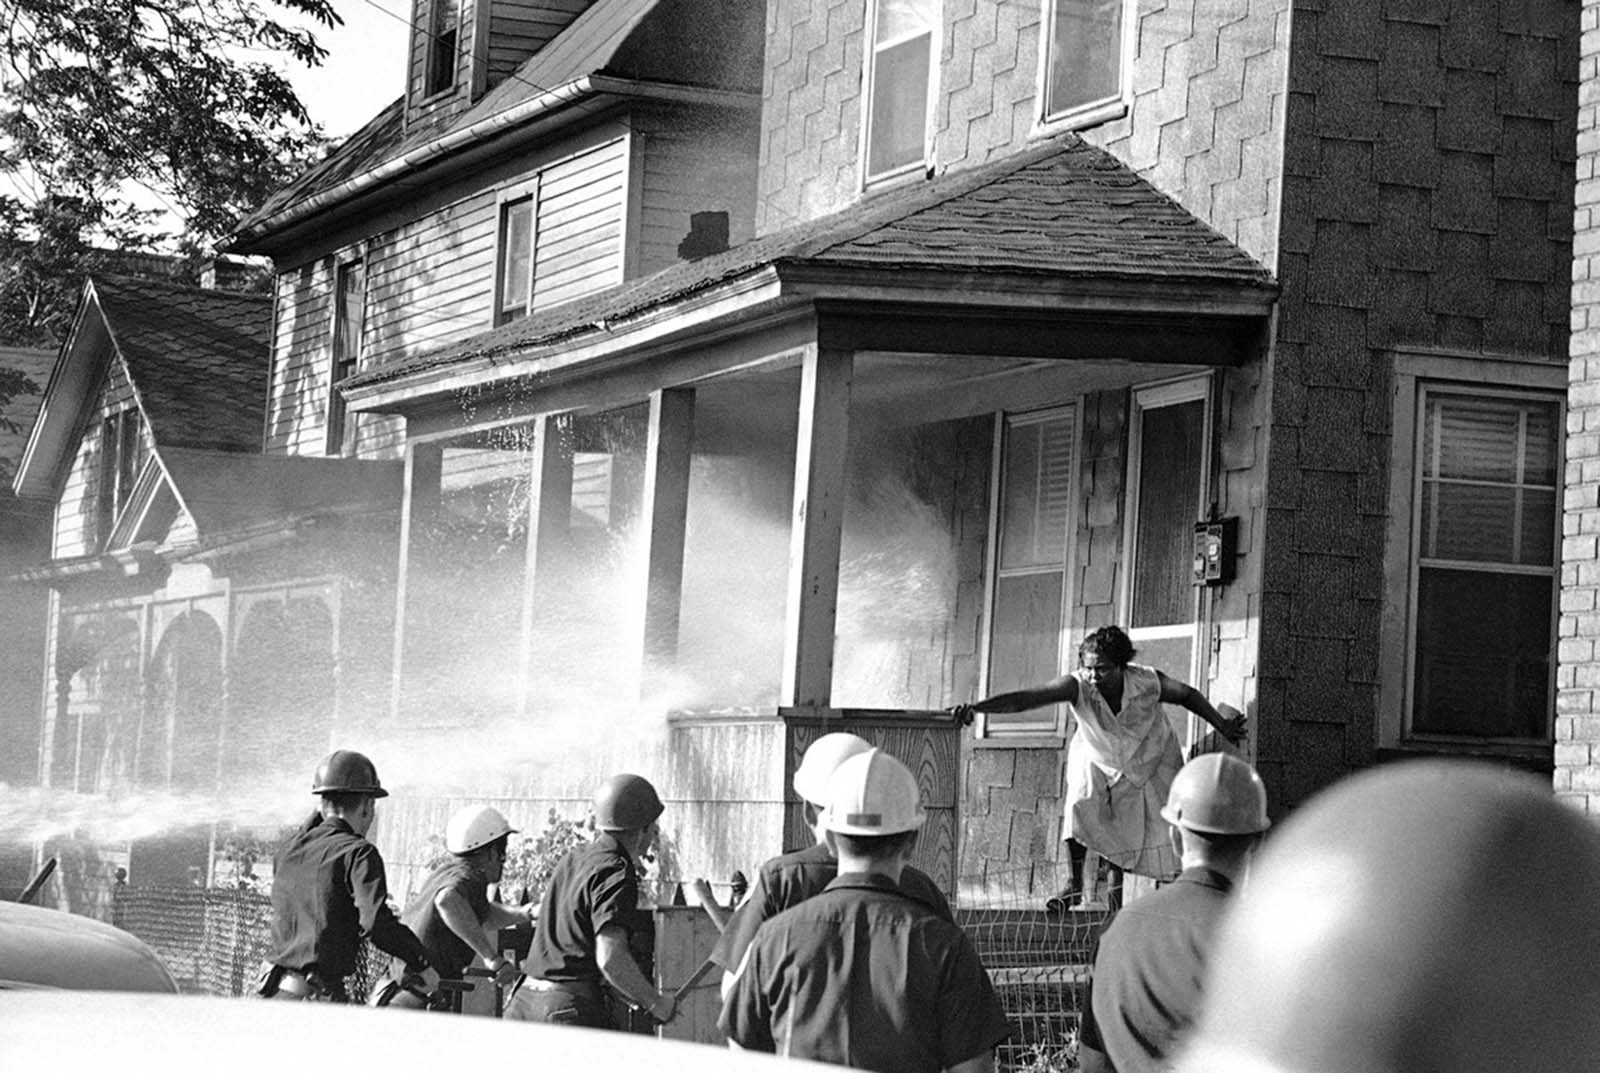 This is the beginning of a clash between African Americans and police officers in Rochester, New York, July 27, 1964. Fire hoses turned on house's porch. A woman stands her ground as companions duck behind porch's wall.